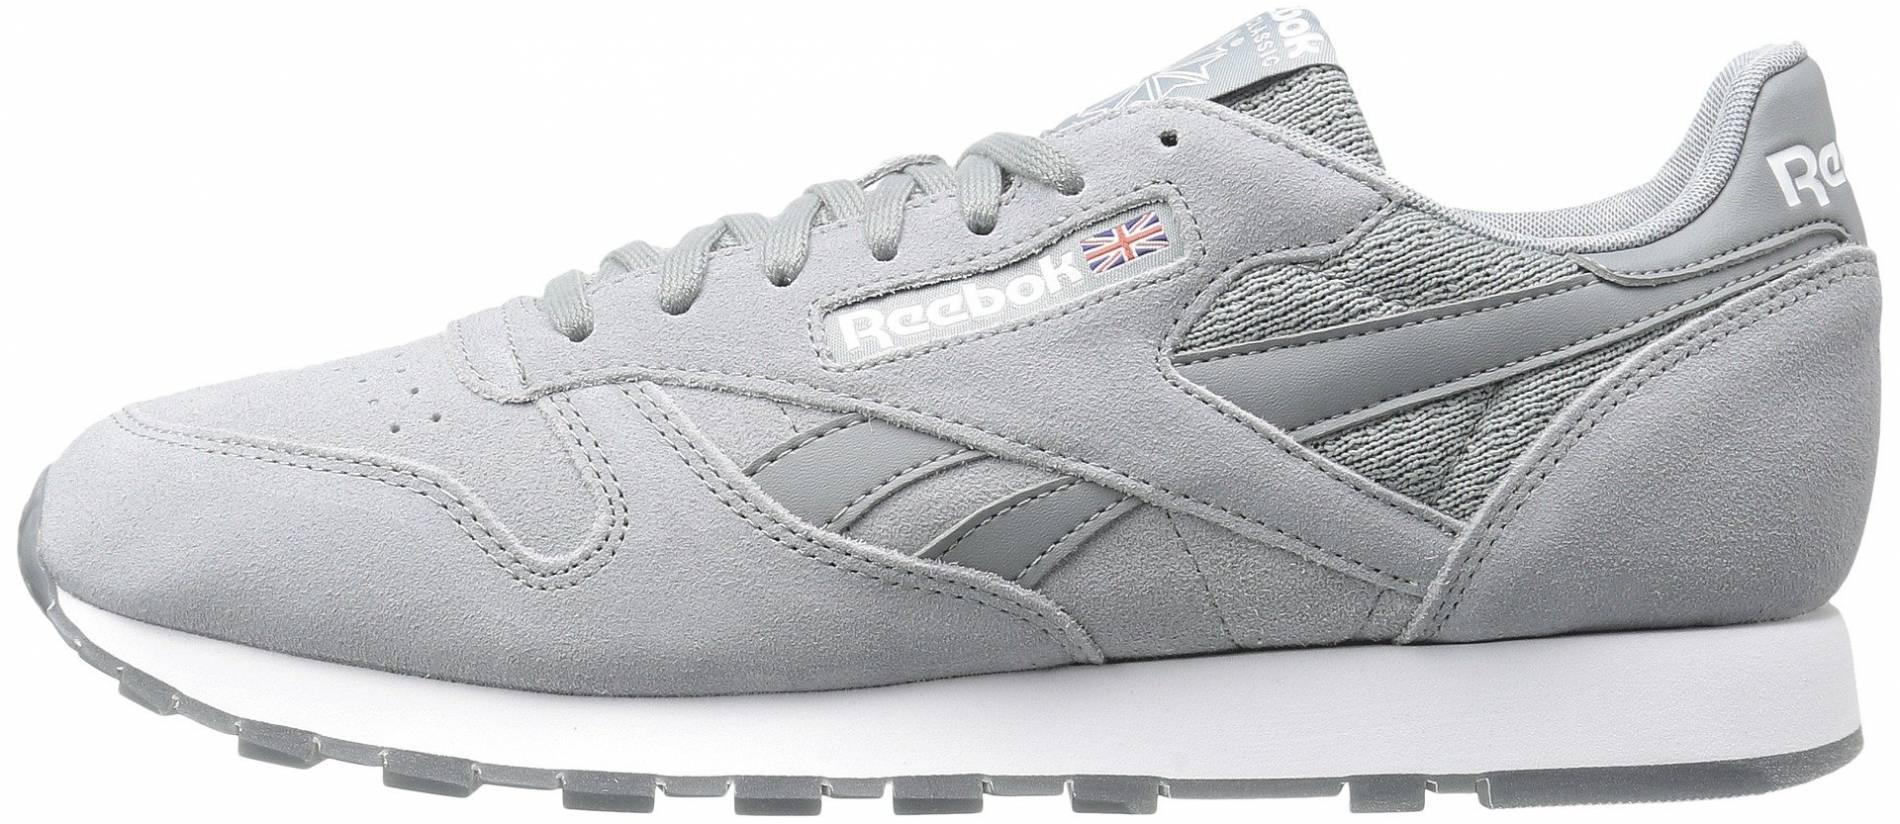 Reebok Classic Leather NM